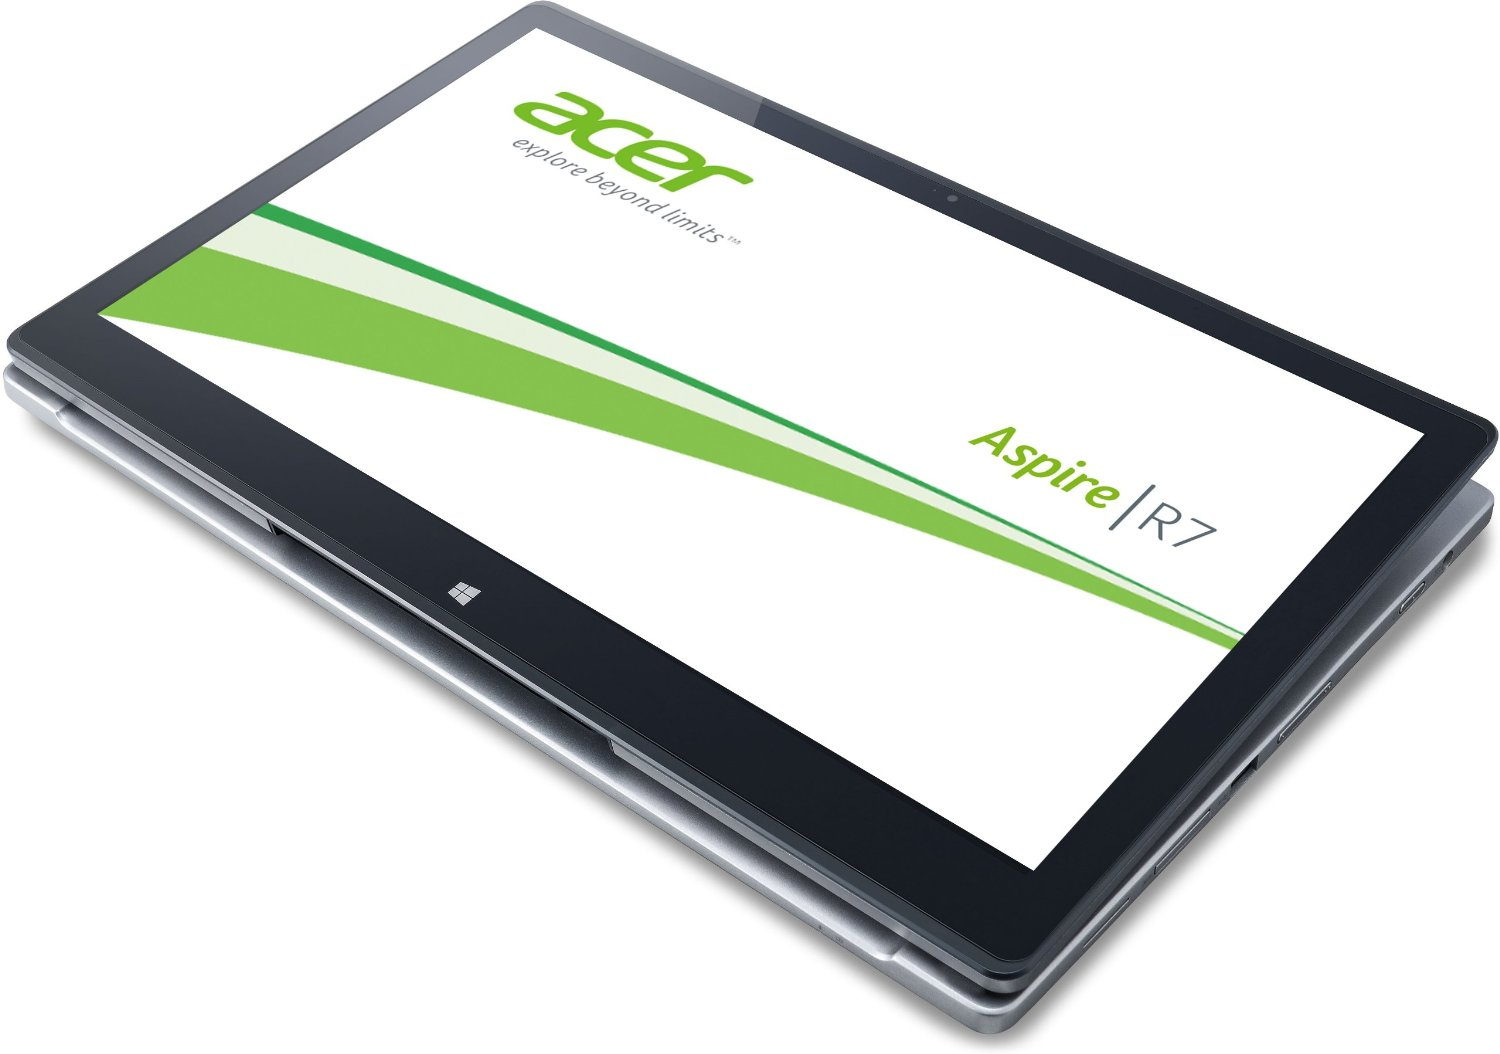 ACER ASPIRE R7-572G DRIVER FOR PC